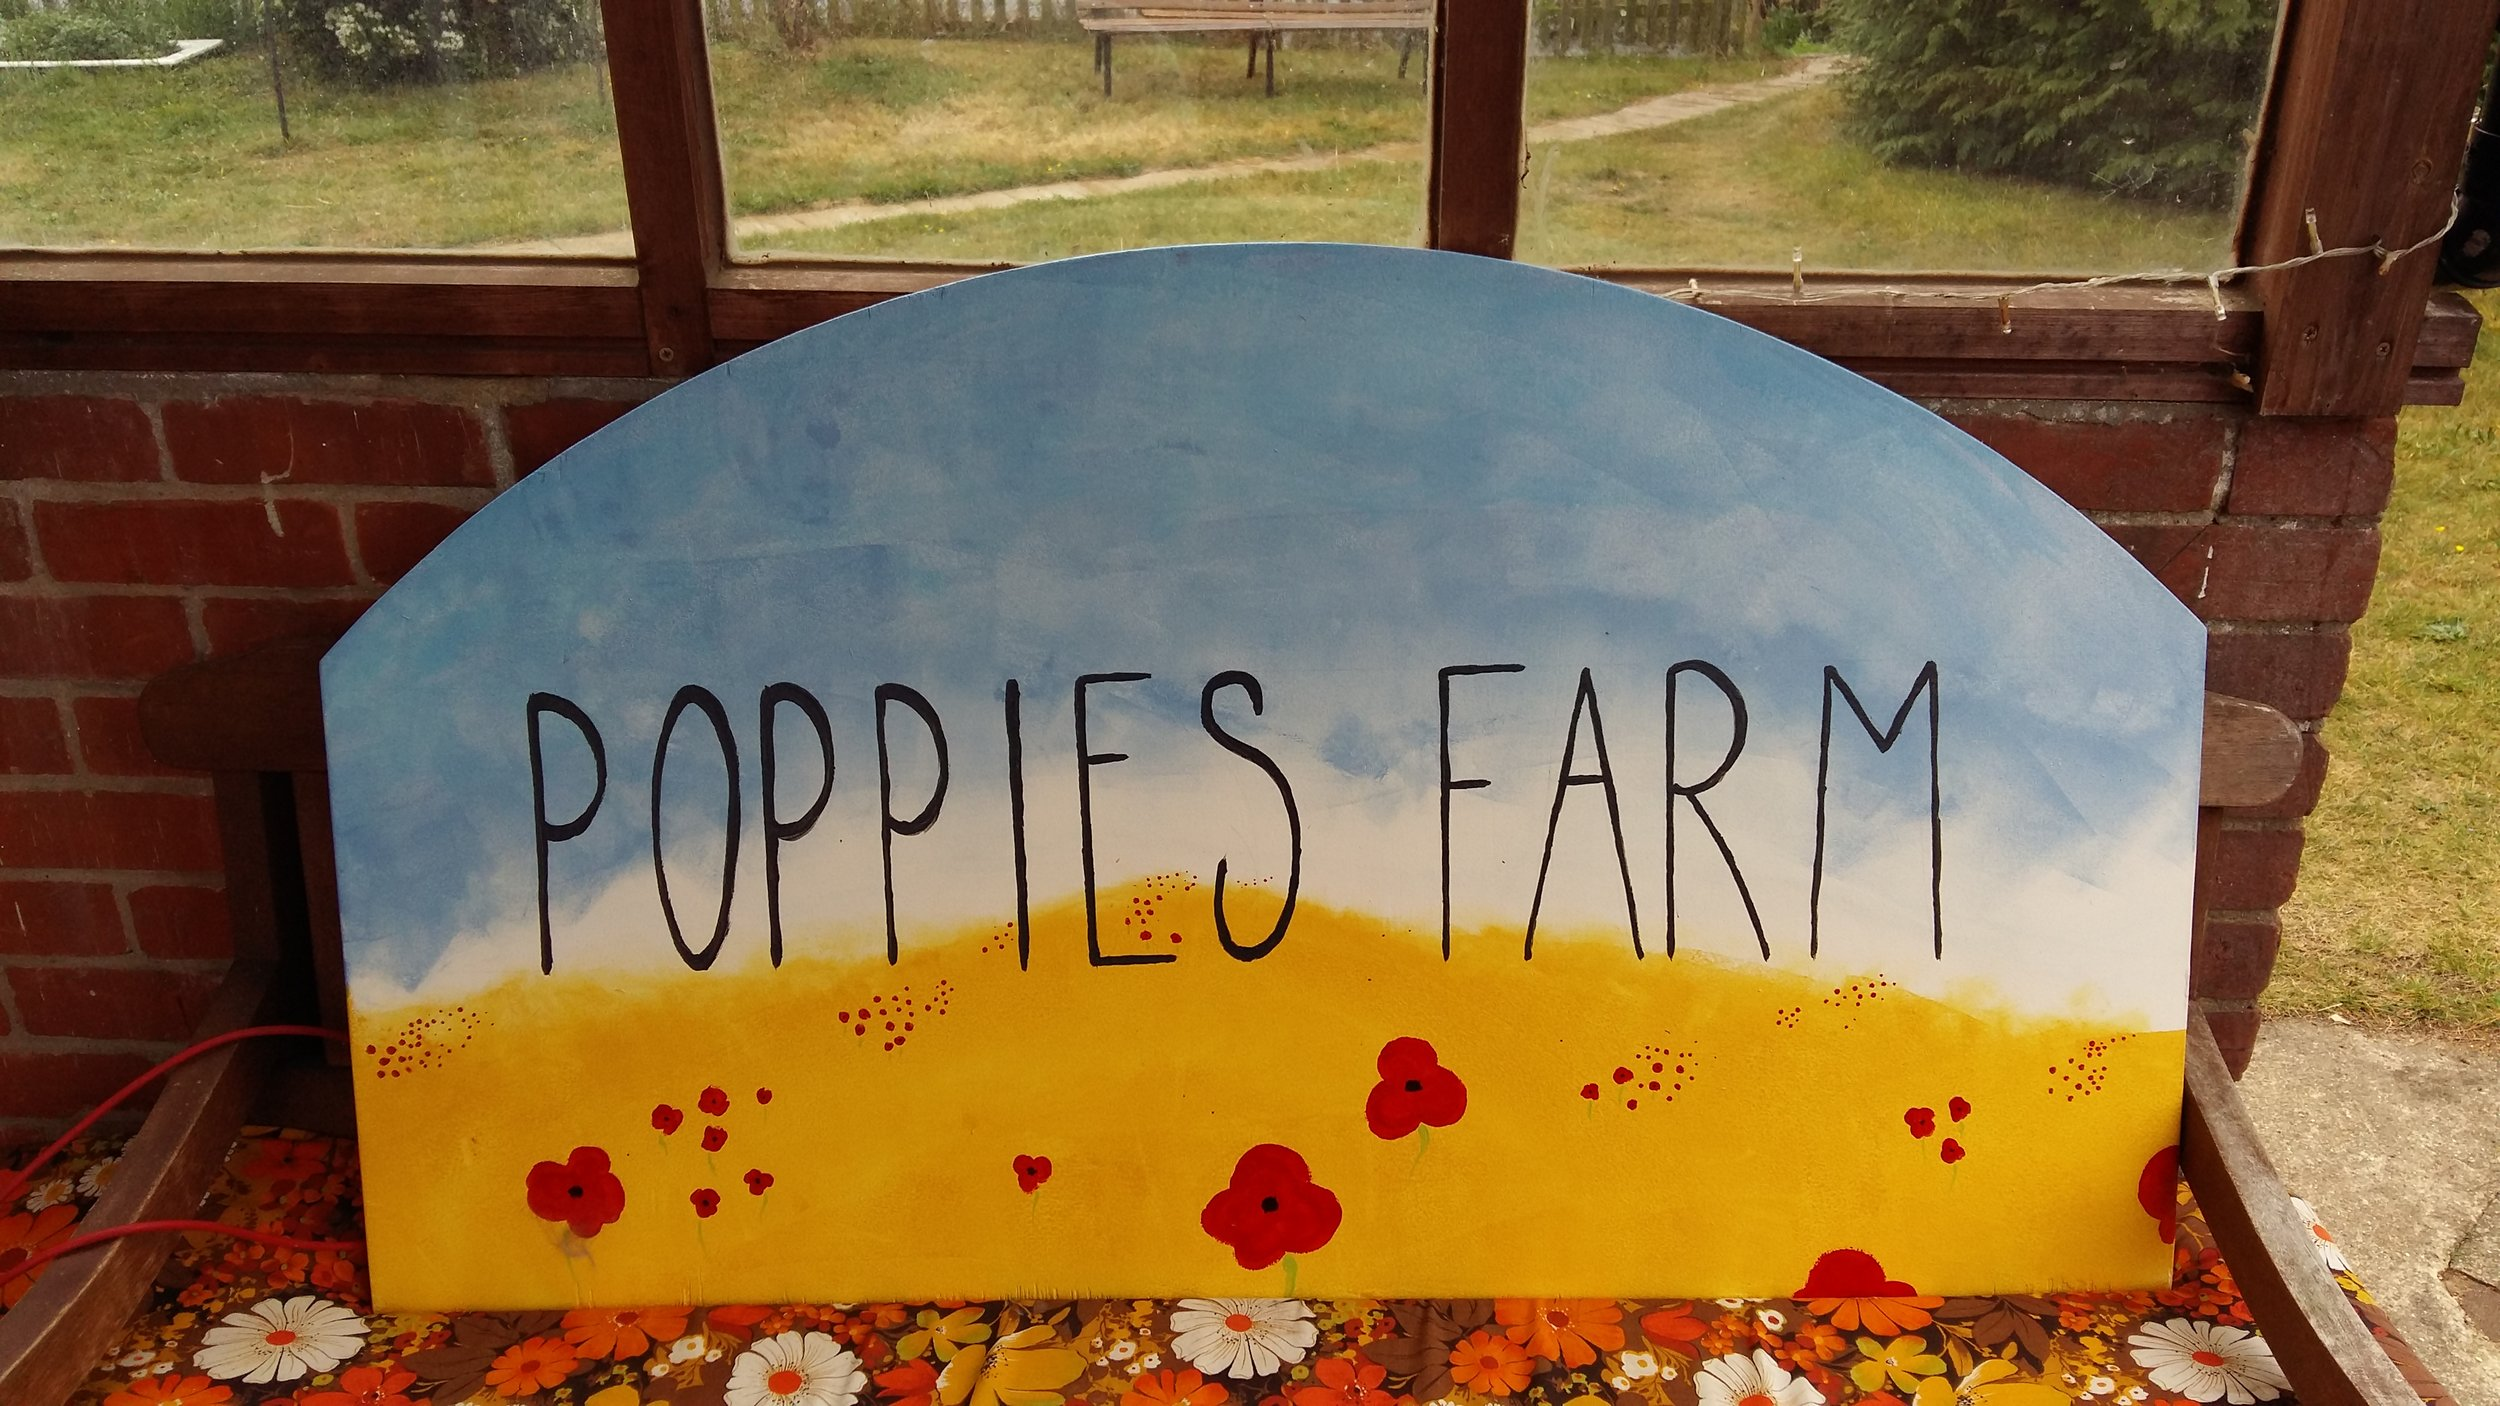 Poppies Farm Sign